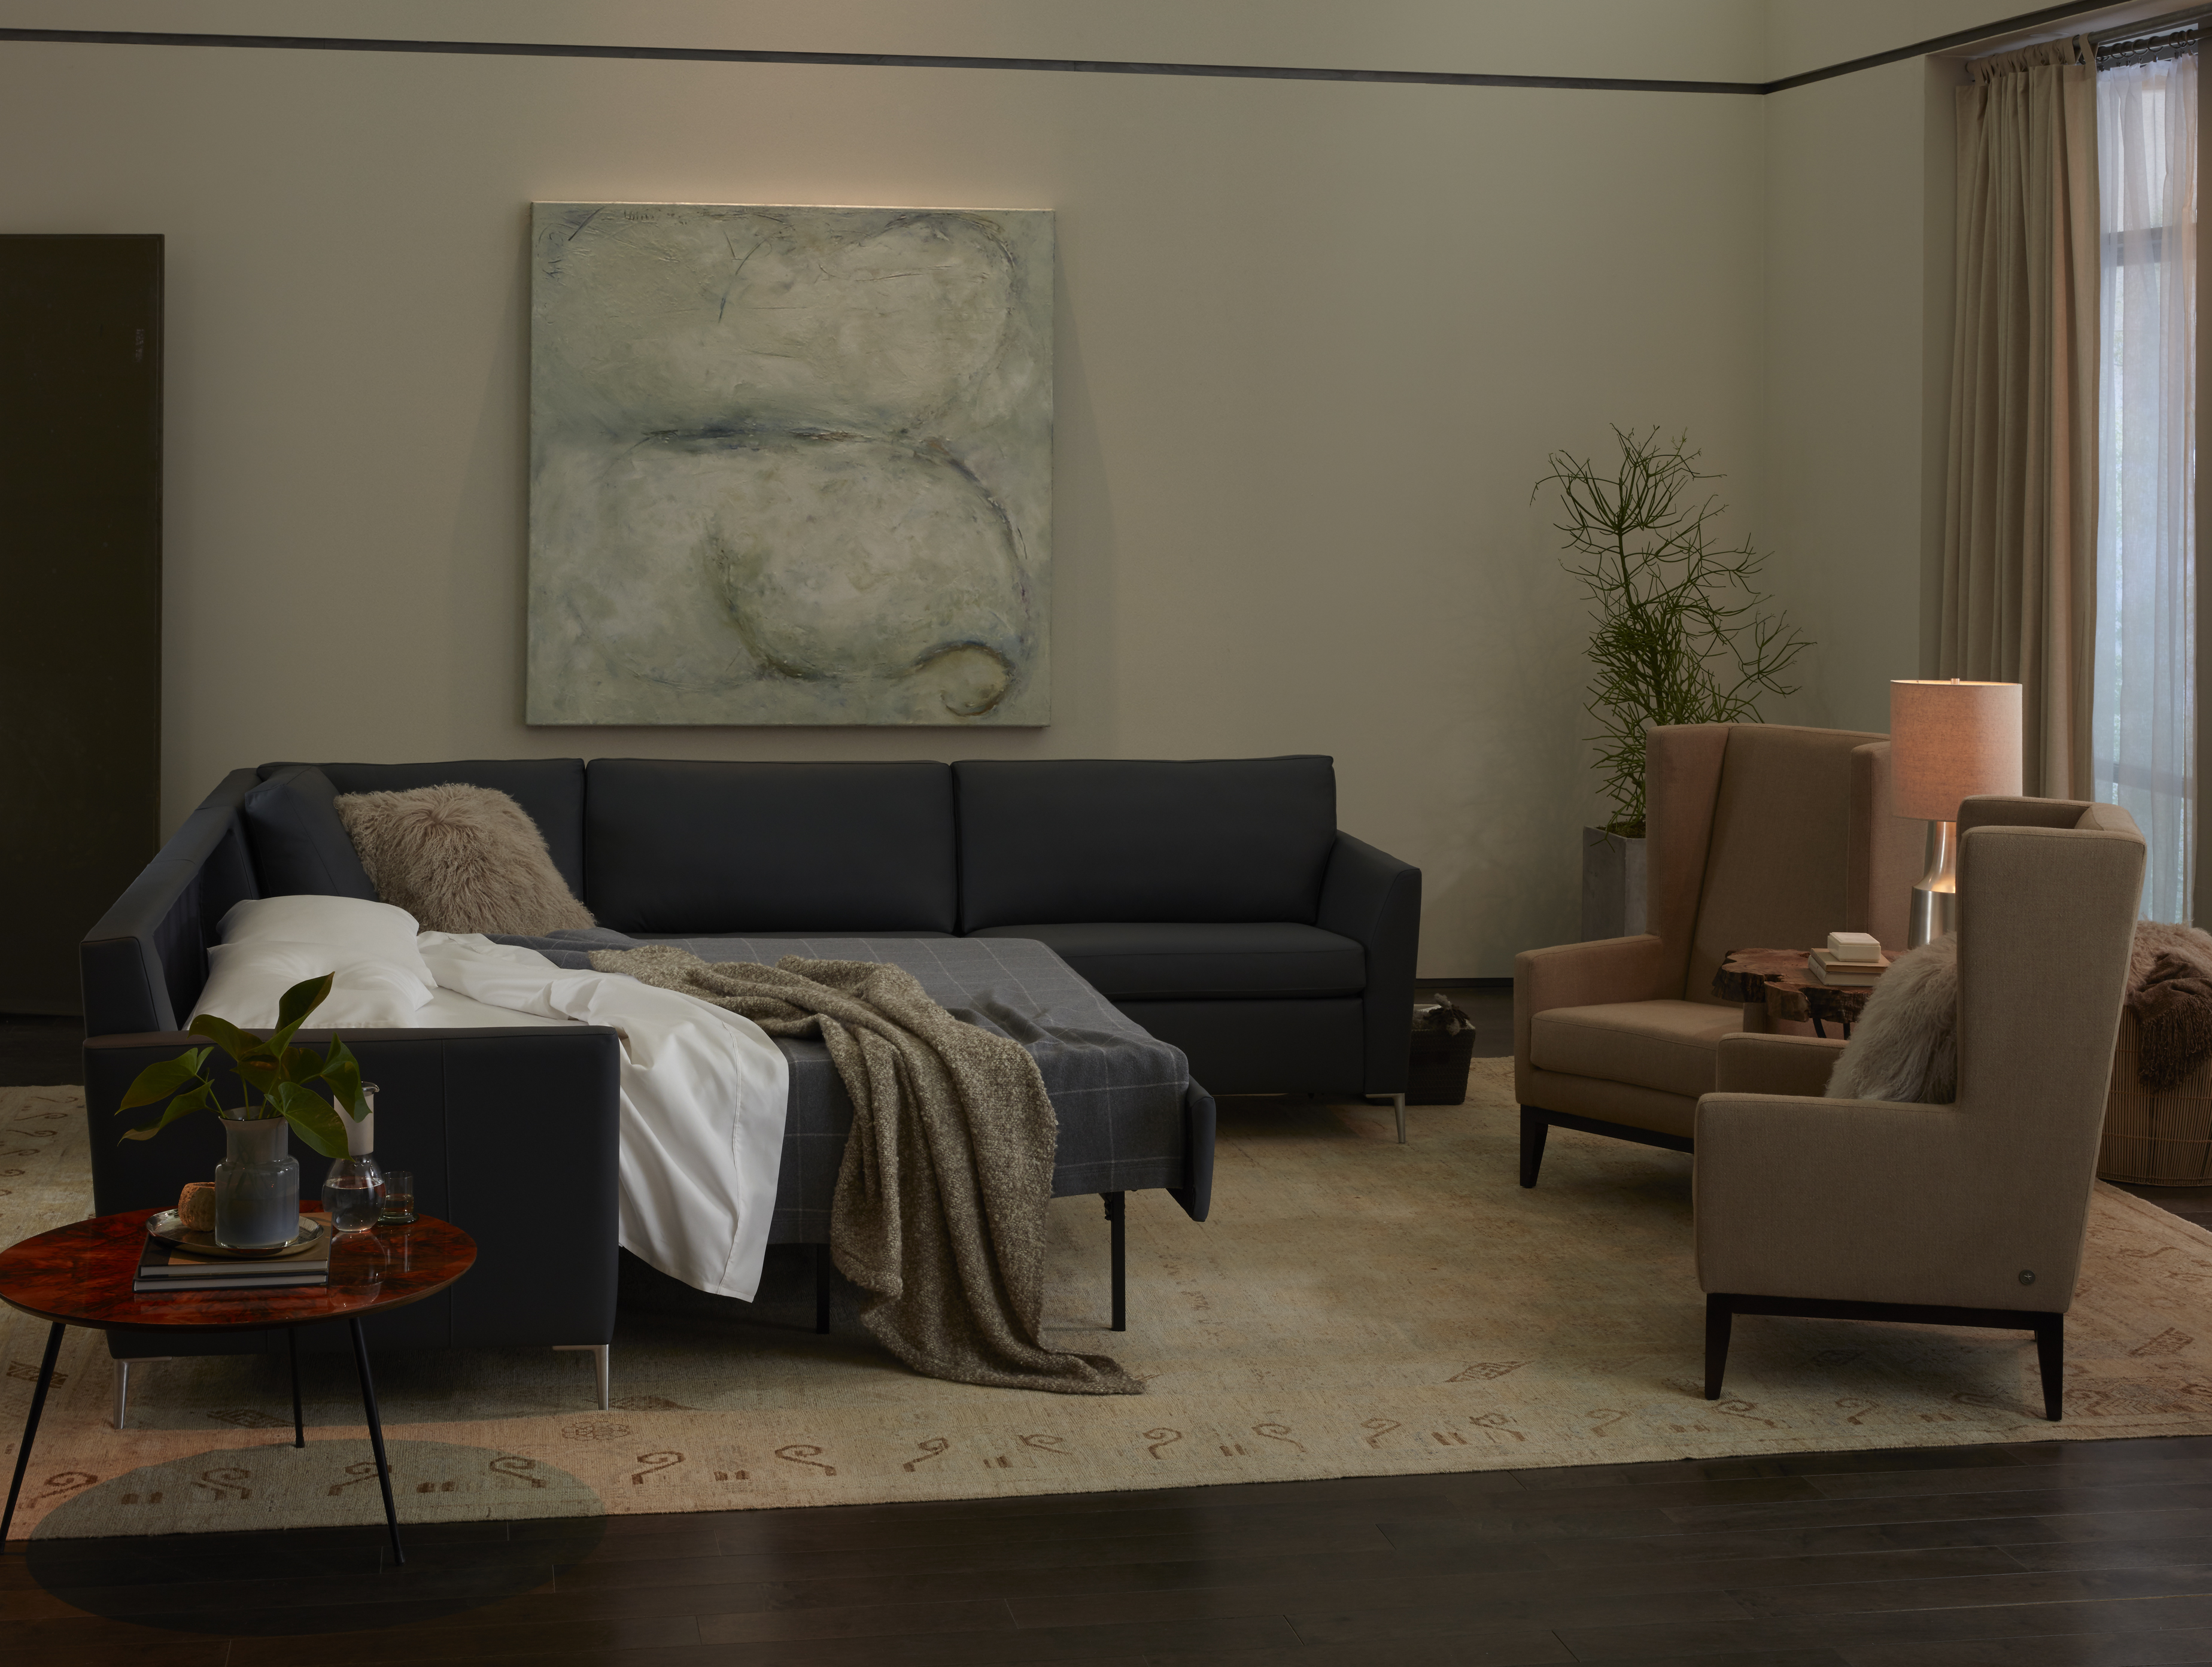 Prime Sleeper Sofa Sale Contemporary Galleries Full Service Andrewgaddart Wooden Chair Designs For Living Room Andrewgaddartcom